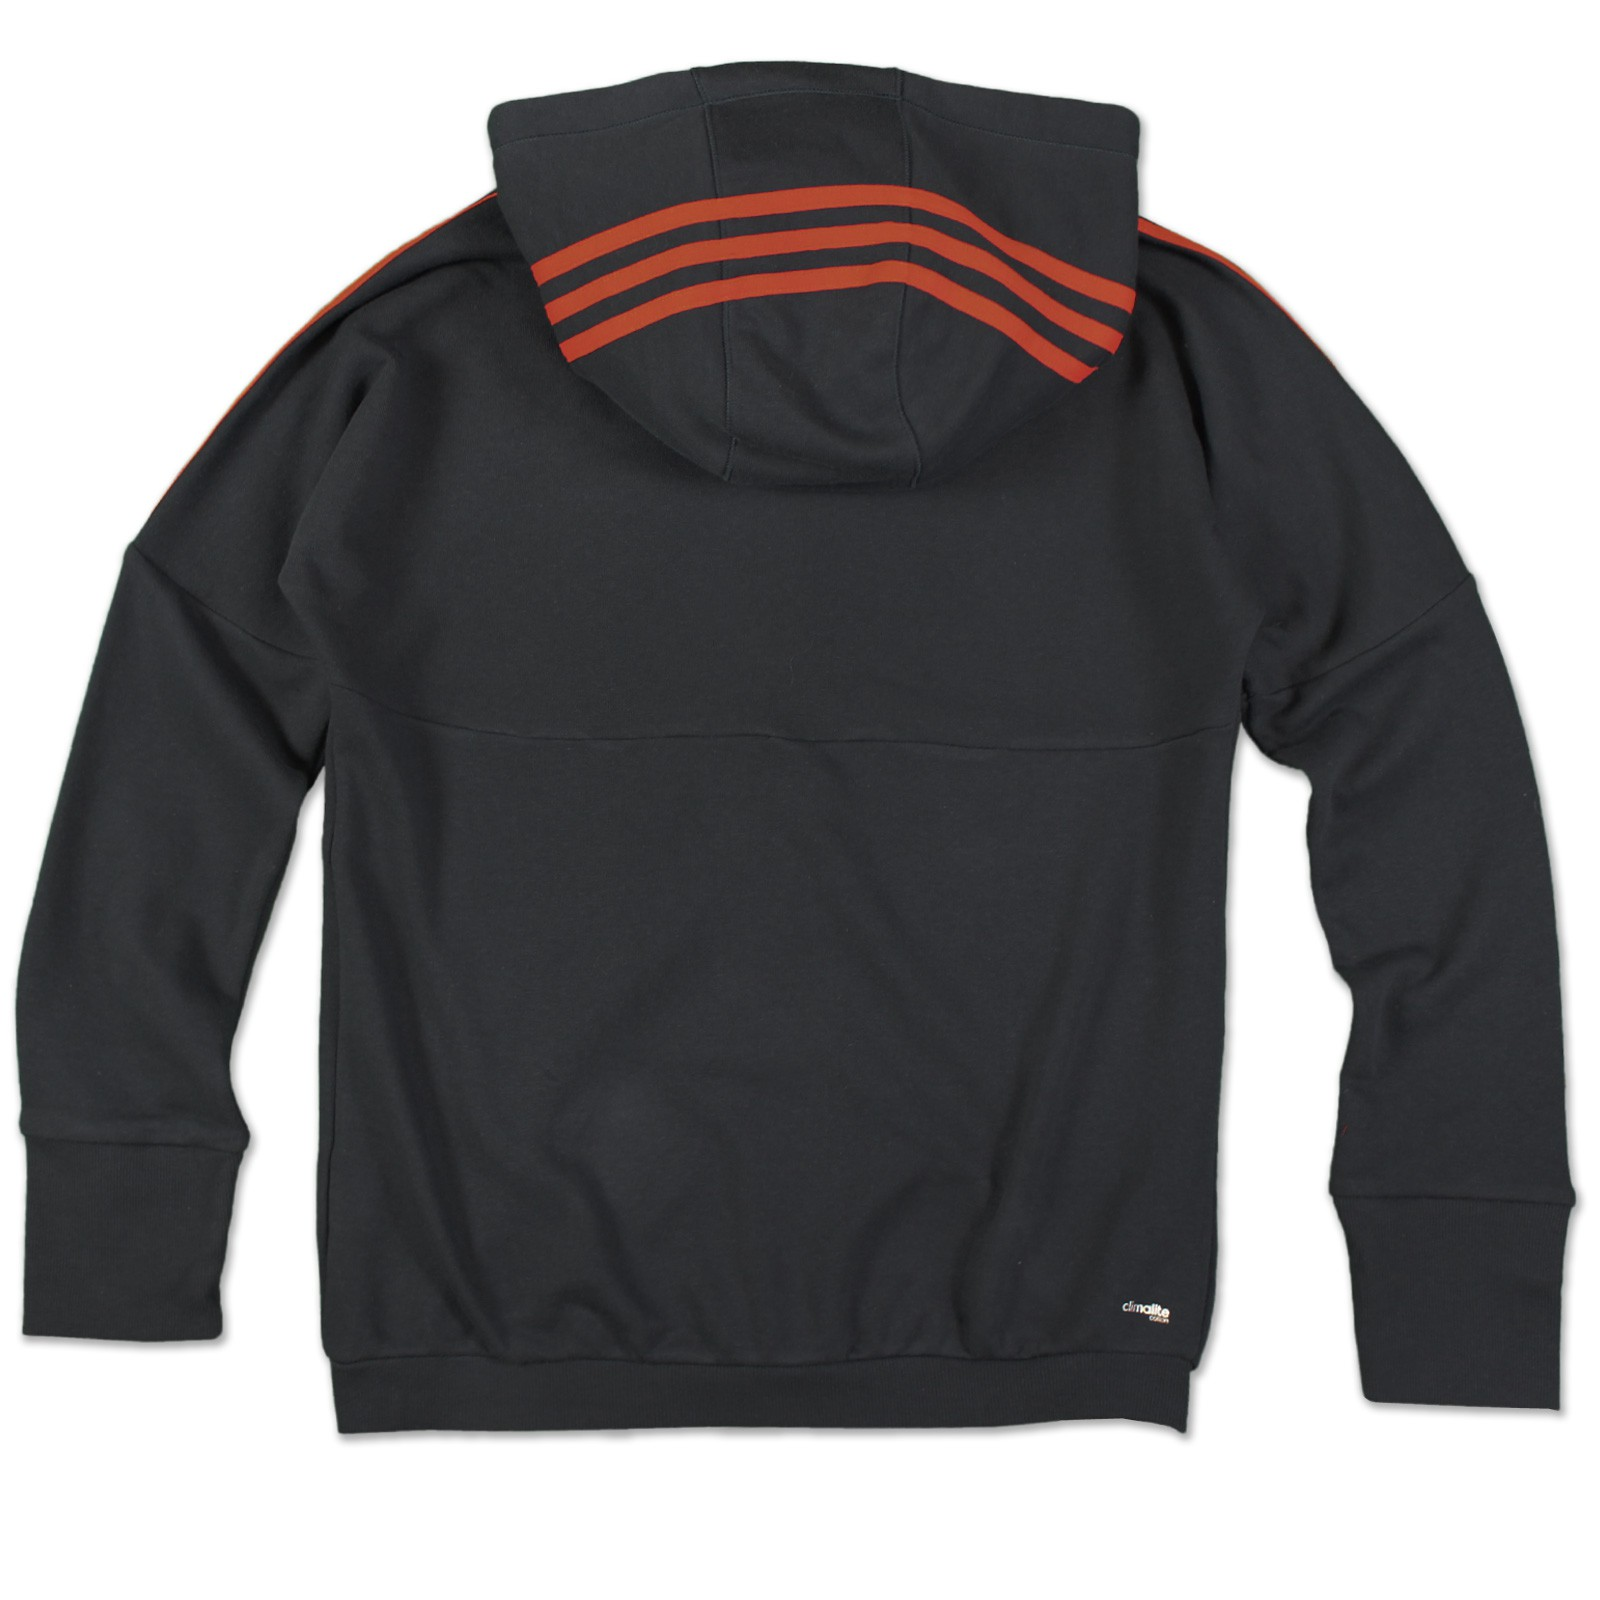 adidas ess 3s sweatjacke full zip hoody hoodie kapuzen damen grau. Black Bedroom Furniture Sets. Home Design Ideas